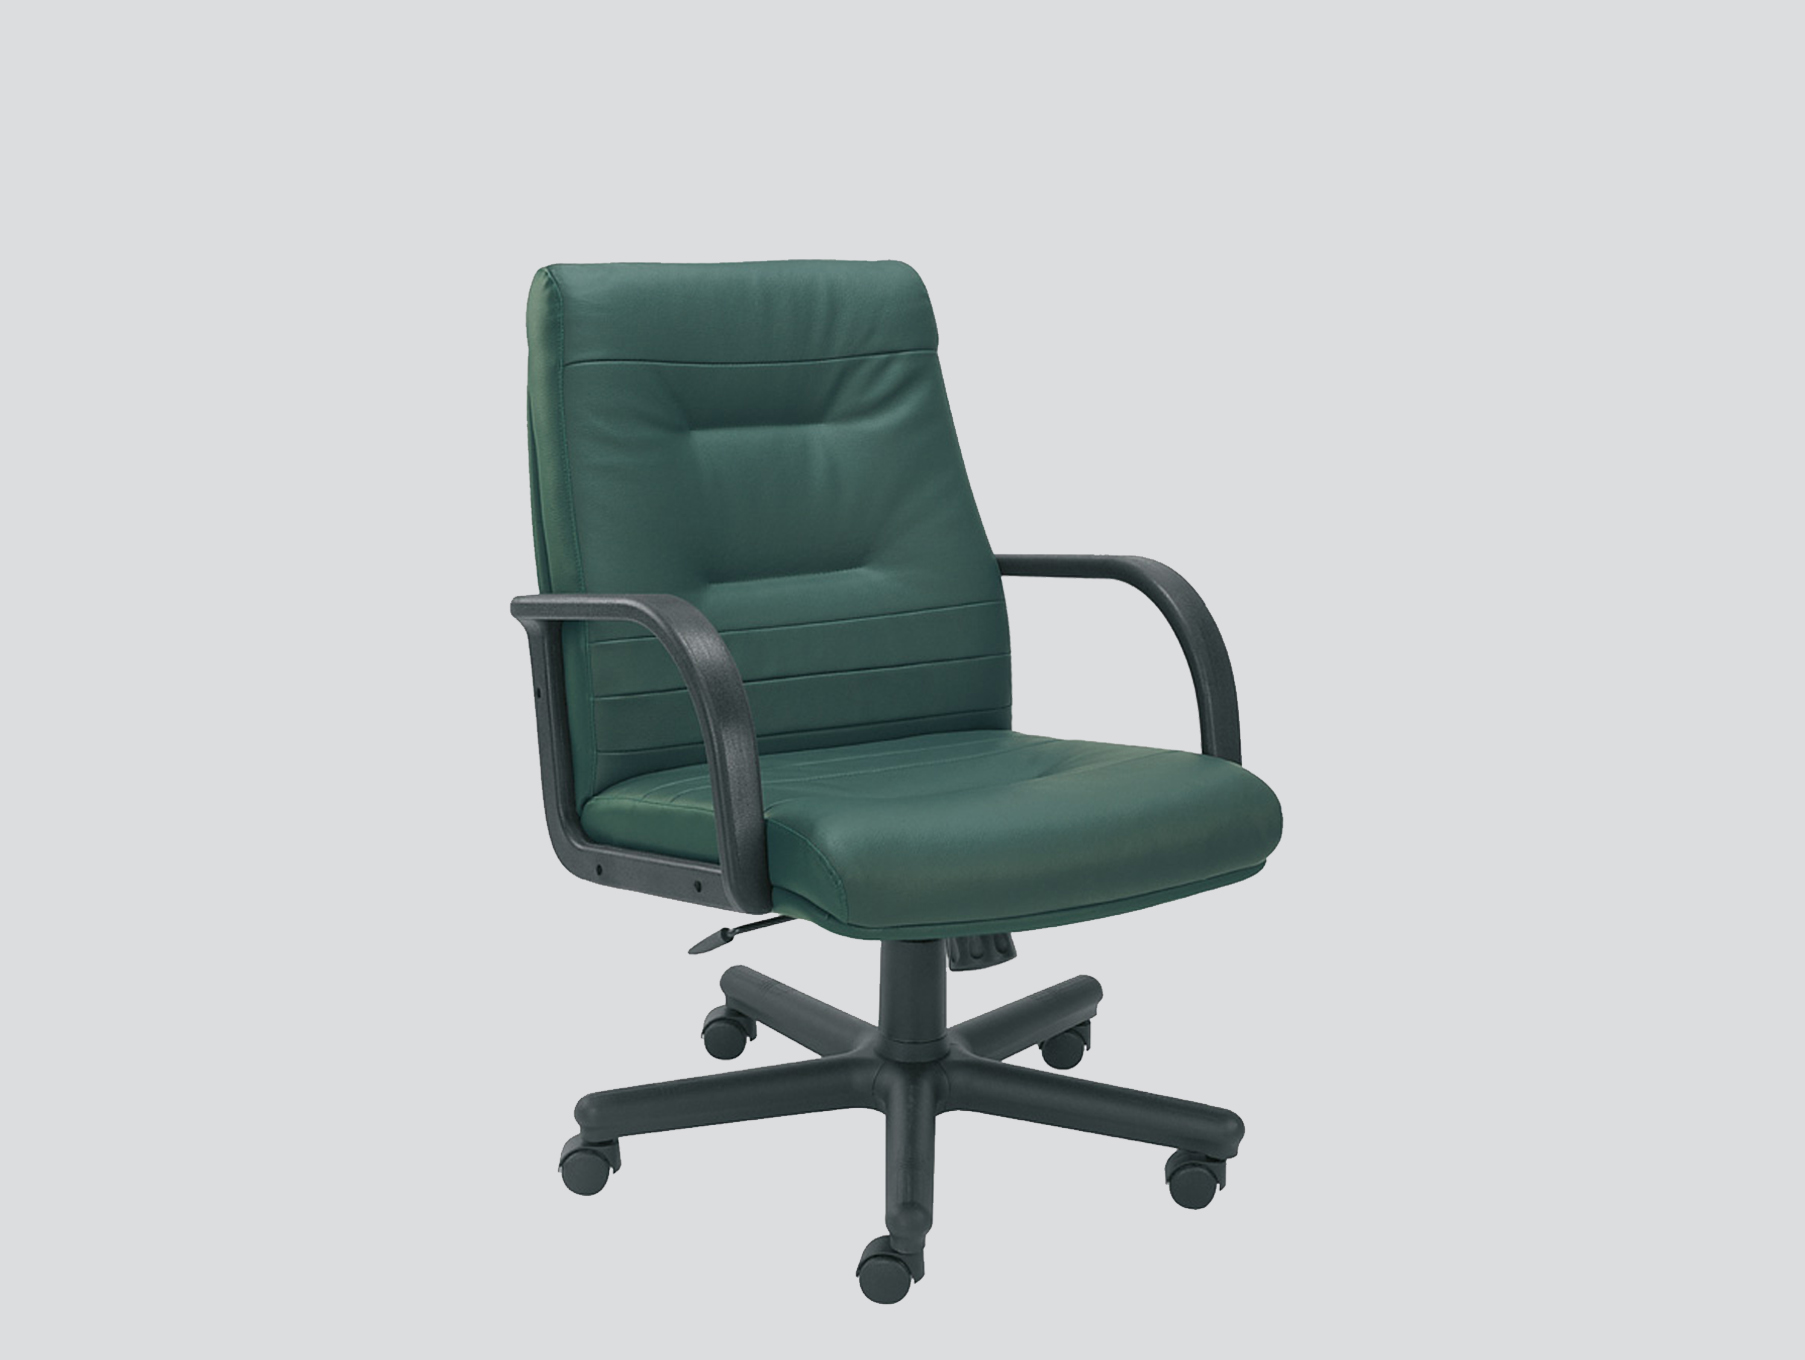 Chair Price Online Furniture Shopping Sites Lebanon Discount Furniture Online Lebanon Office Chair Price Beirut